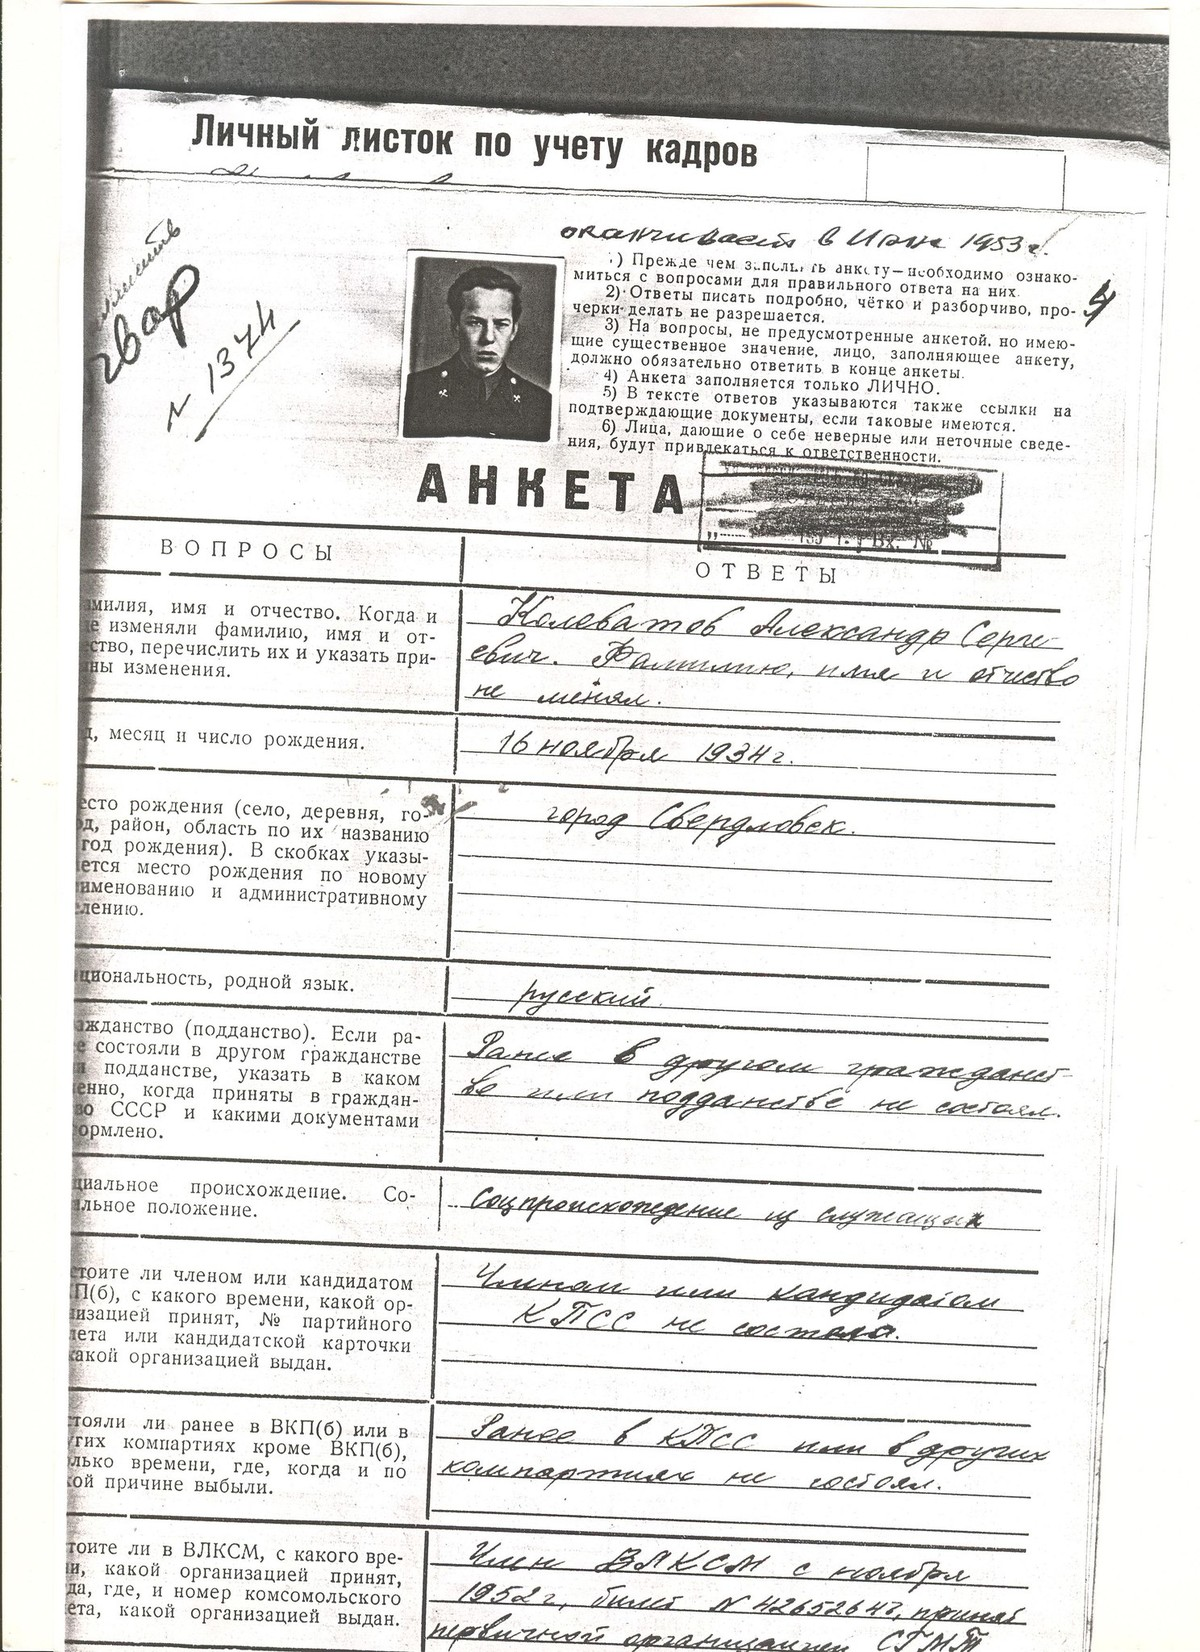 https://dyatlovpass.com/resources/340/gallery/Aleksander-Kolevatov-documents-44.jpg